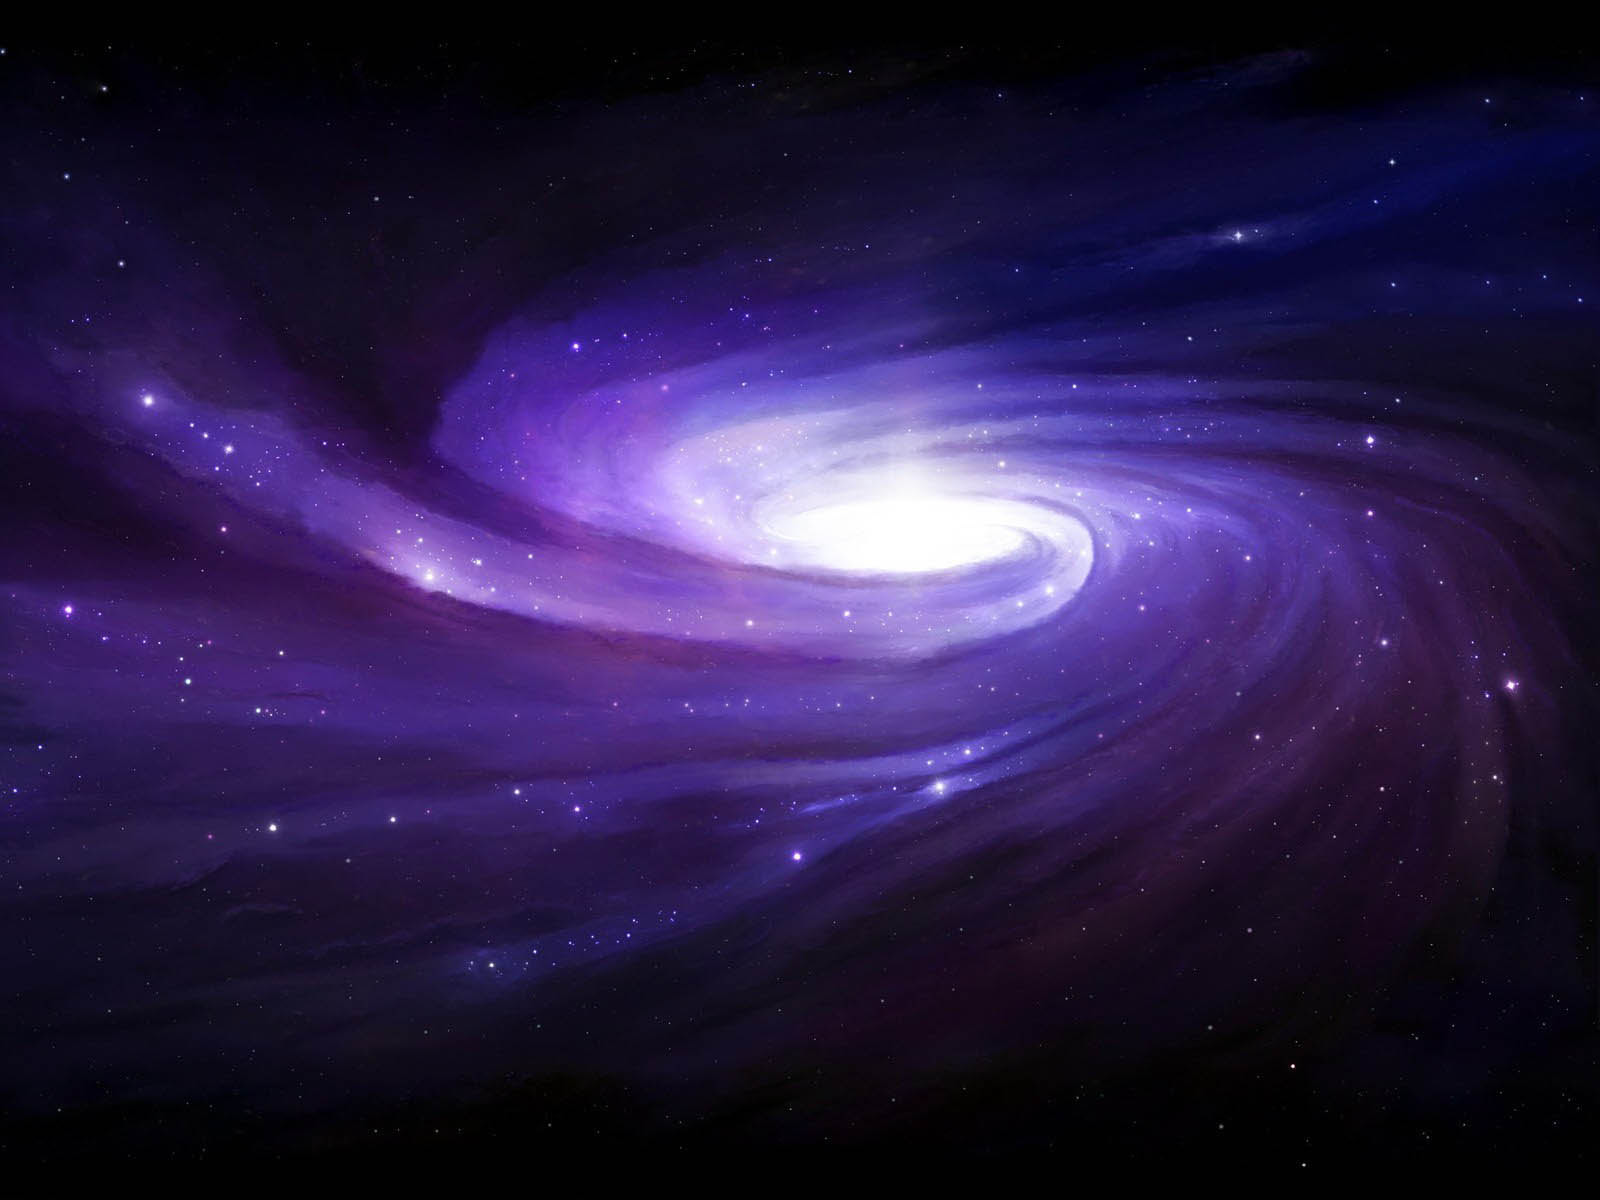 Galaxy Background Powerpoint Backgrounds For Free Powerpoint Templates